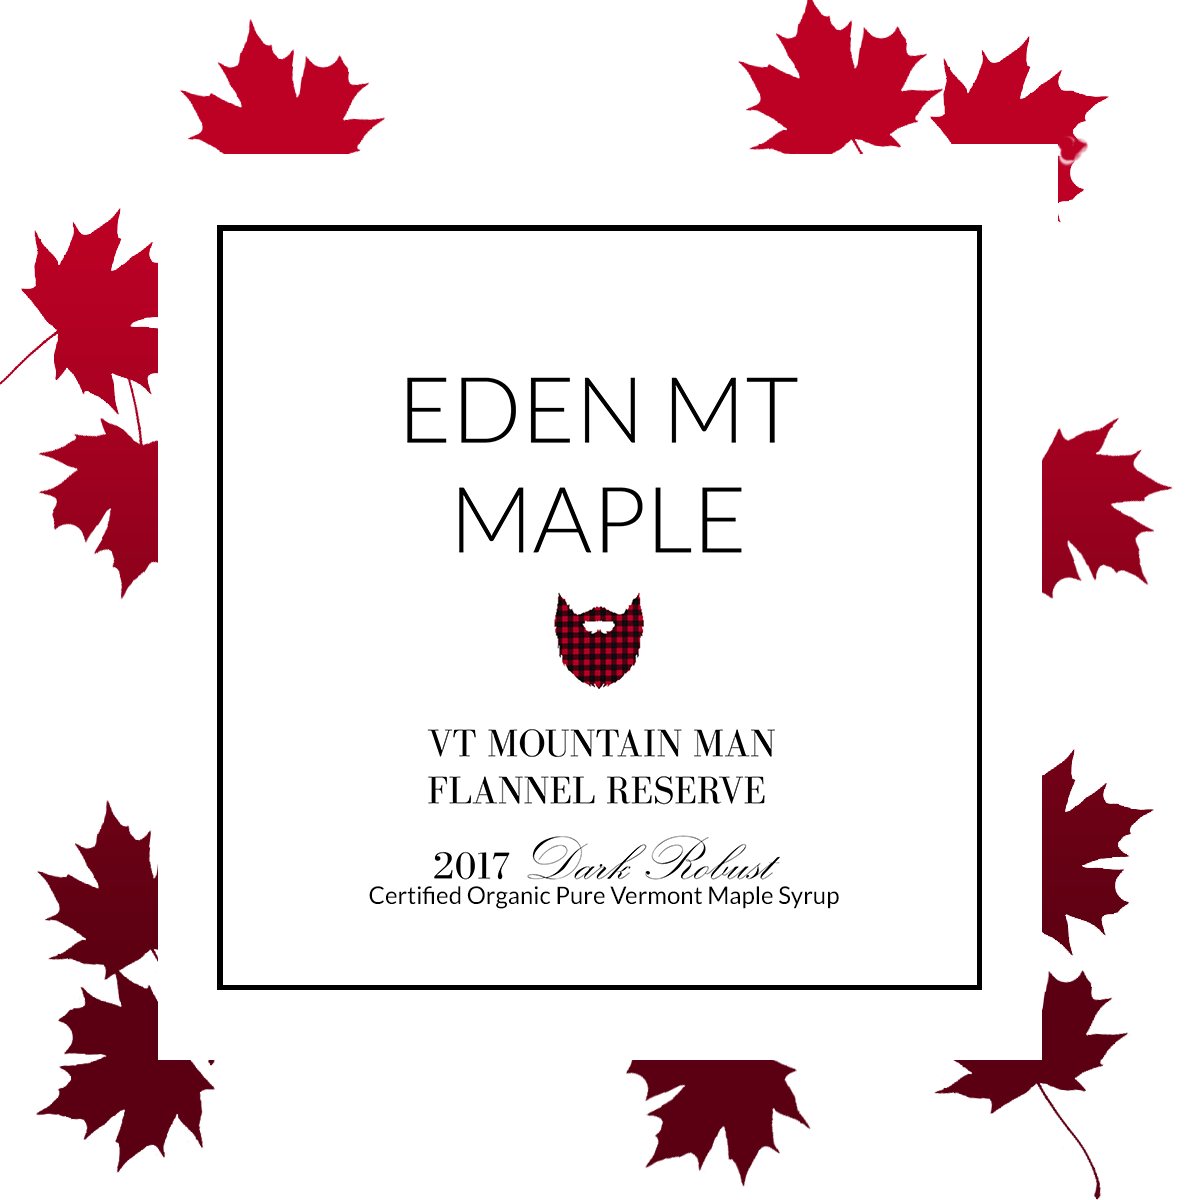 eden mt maple reserve lable mock up outer layers red.png